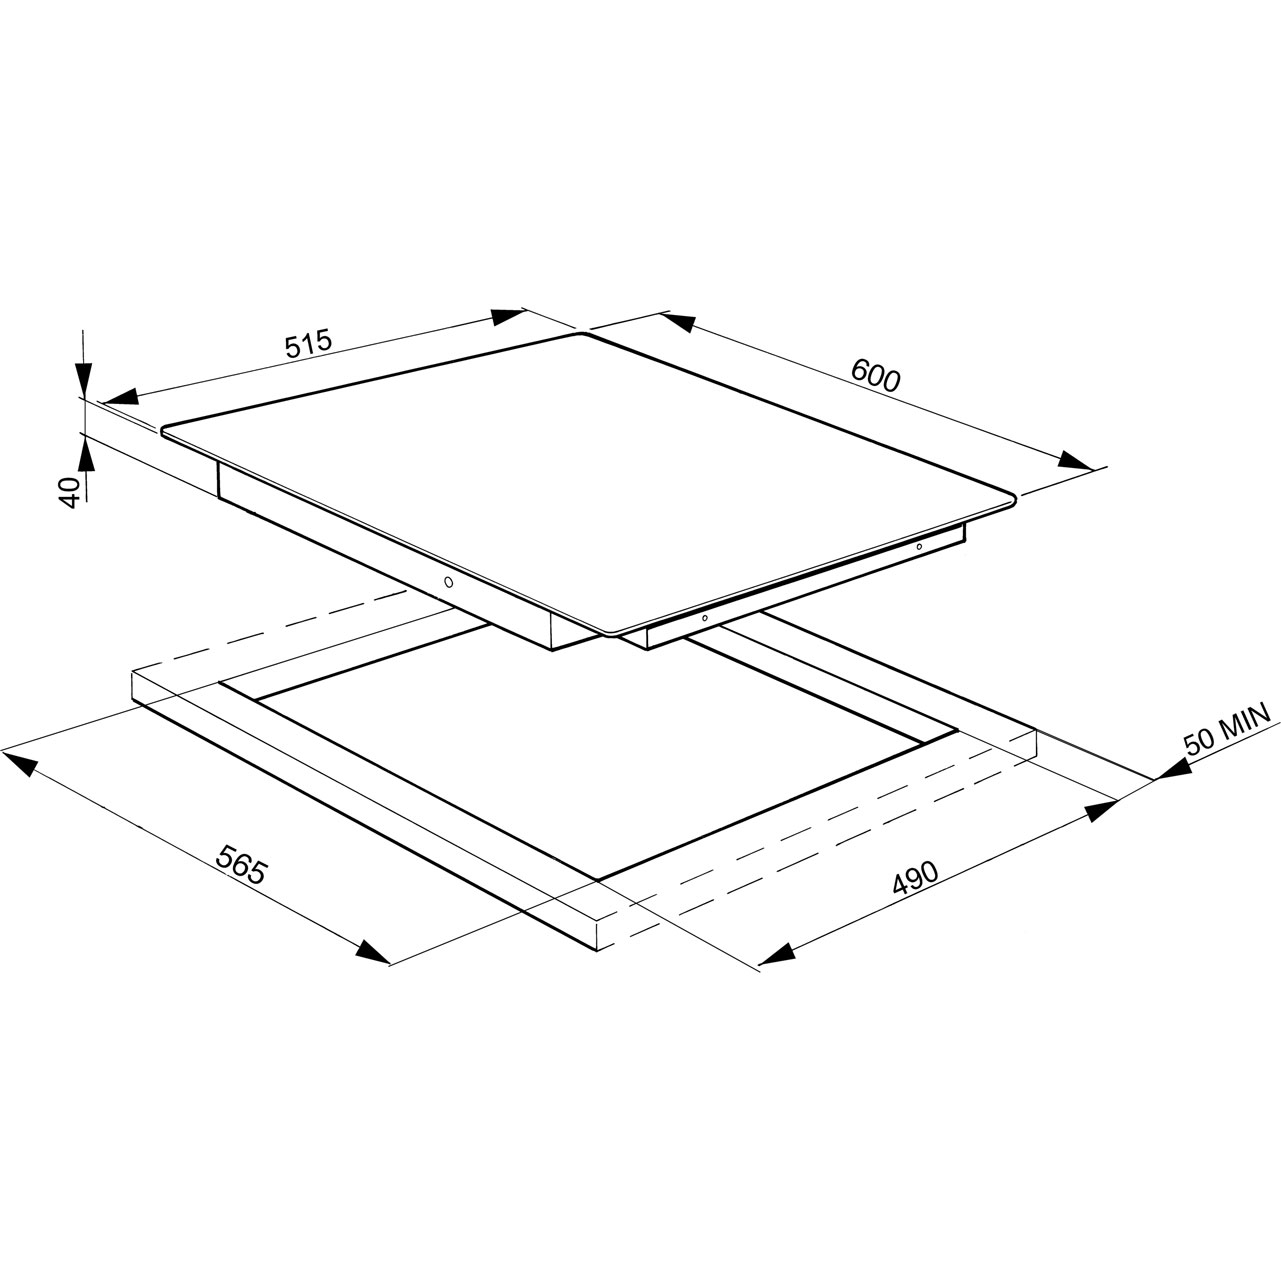 wiring diagram electric hob with Smeg Range Wiring Diagram on Ge Electric Cooktop Wiring also Electric Cooker Wiring moreover Kitchen Wiring Regulations additionally Cooker Wiring Diagram in addition Wiring Diagram For Oven.